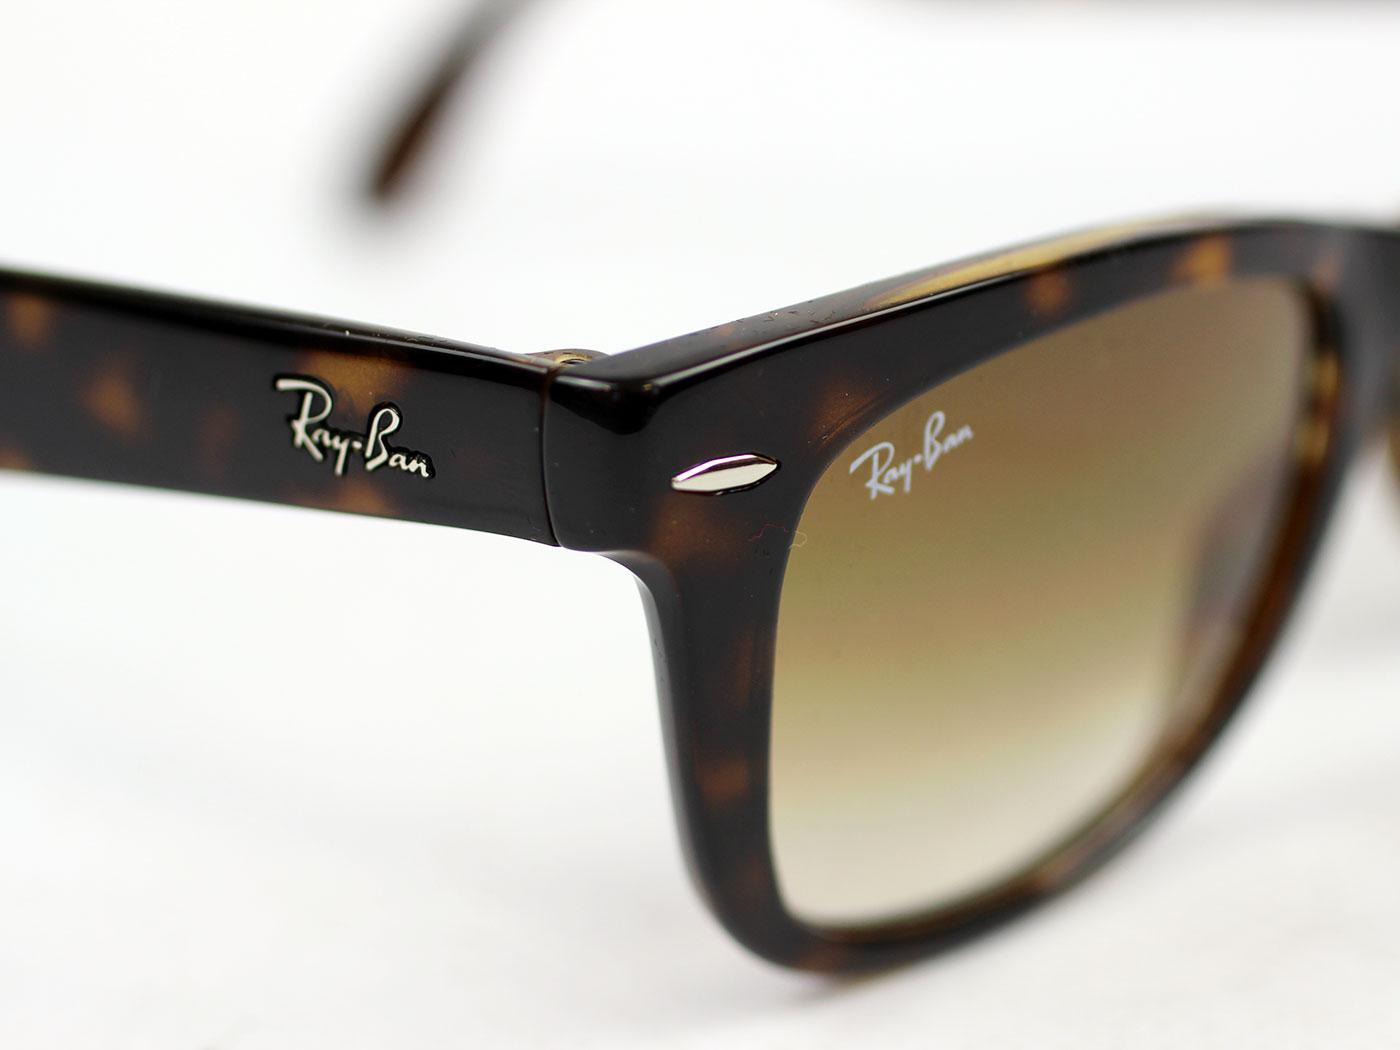 57c2aa2133b Ray-Ban Folding Wayfarer Retro Mod Sunglasses in Tortoiseshell